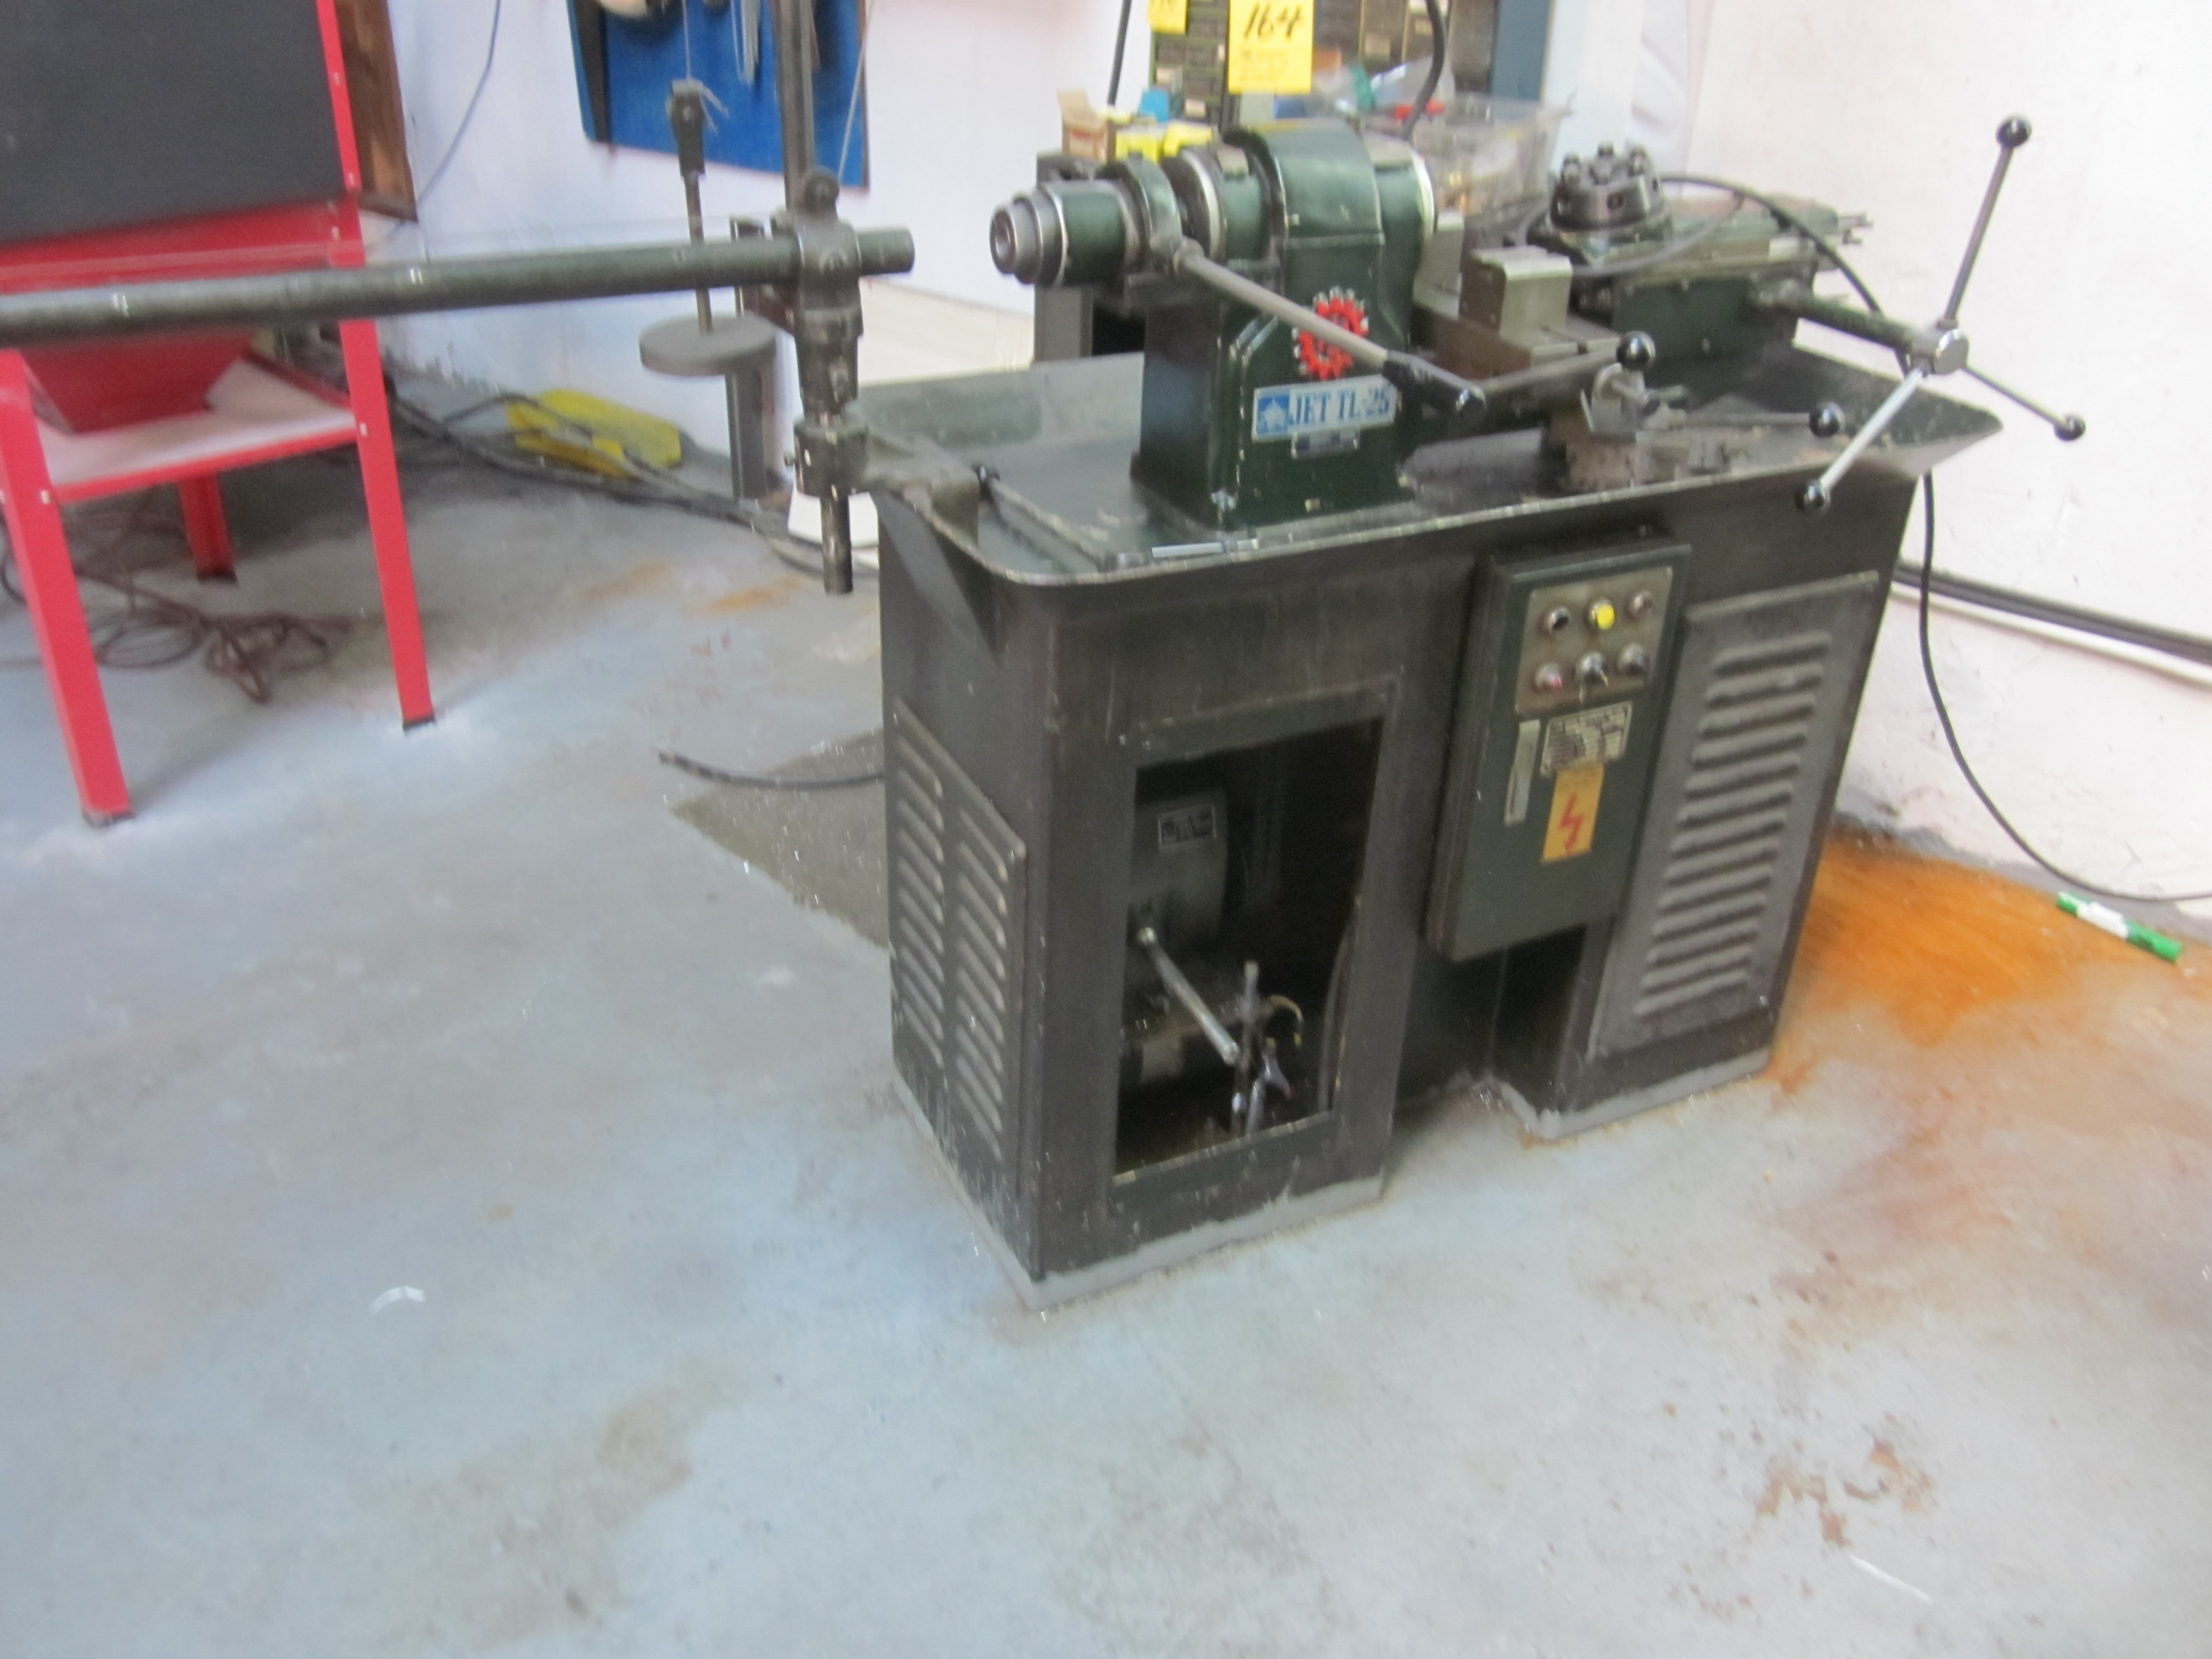 Lot 164 - JET TL-25 TURRET LAHE, NO. 682901